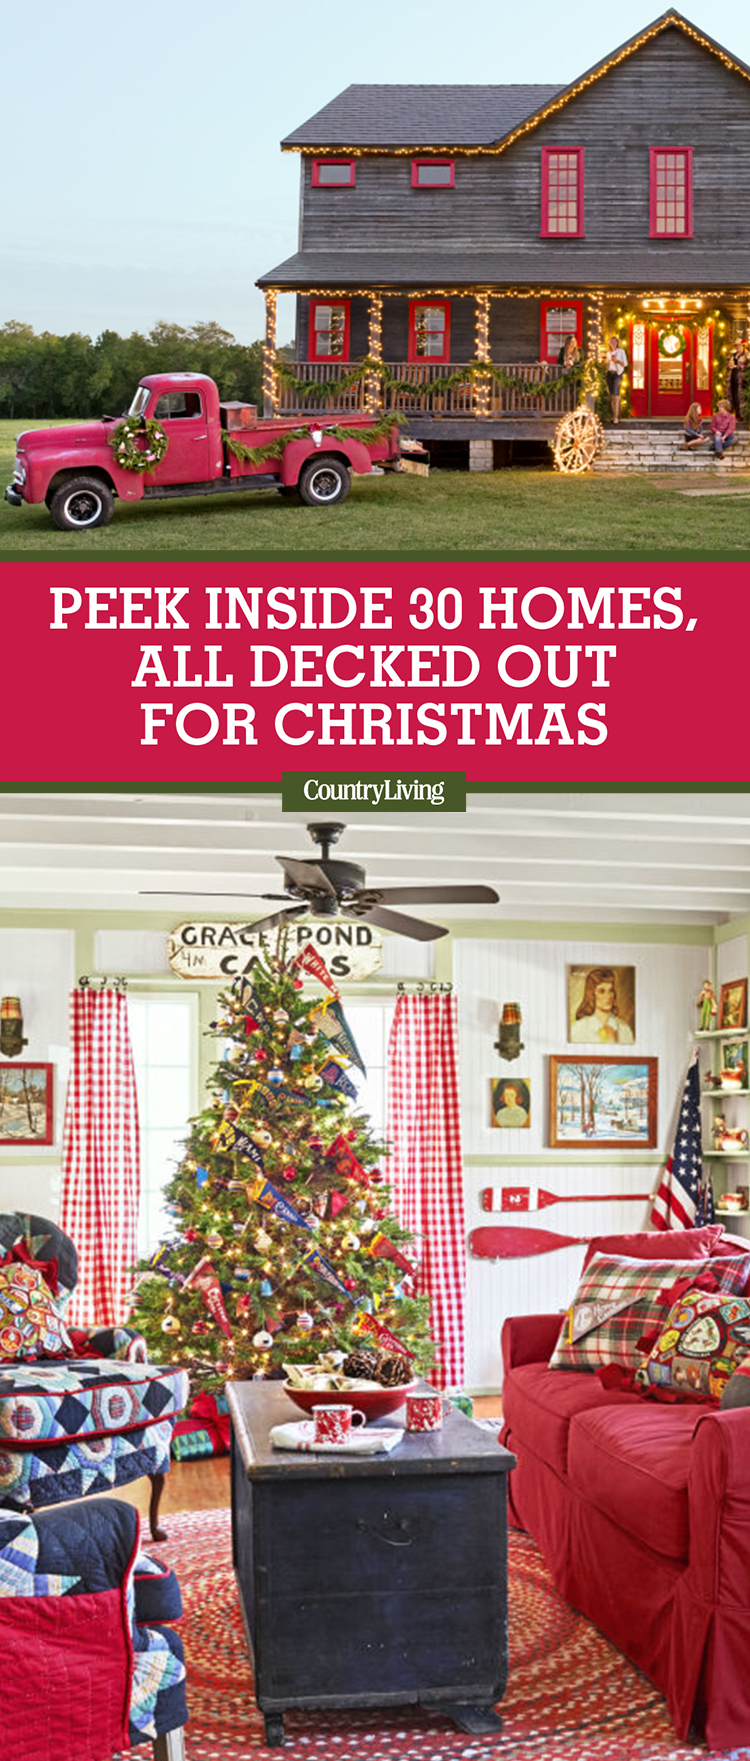 30 Homes, All Decked out for Christmas